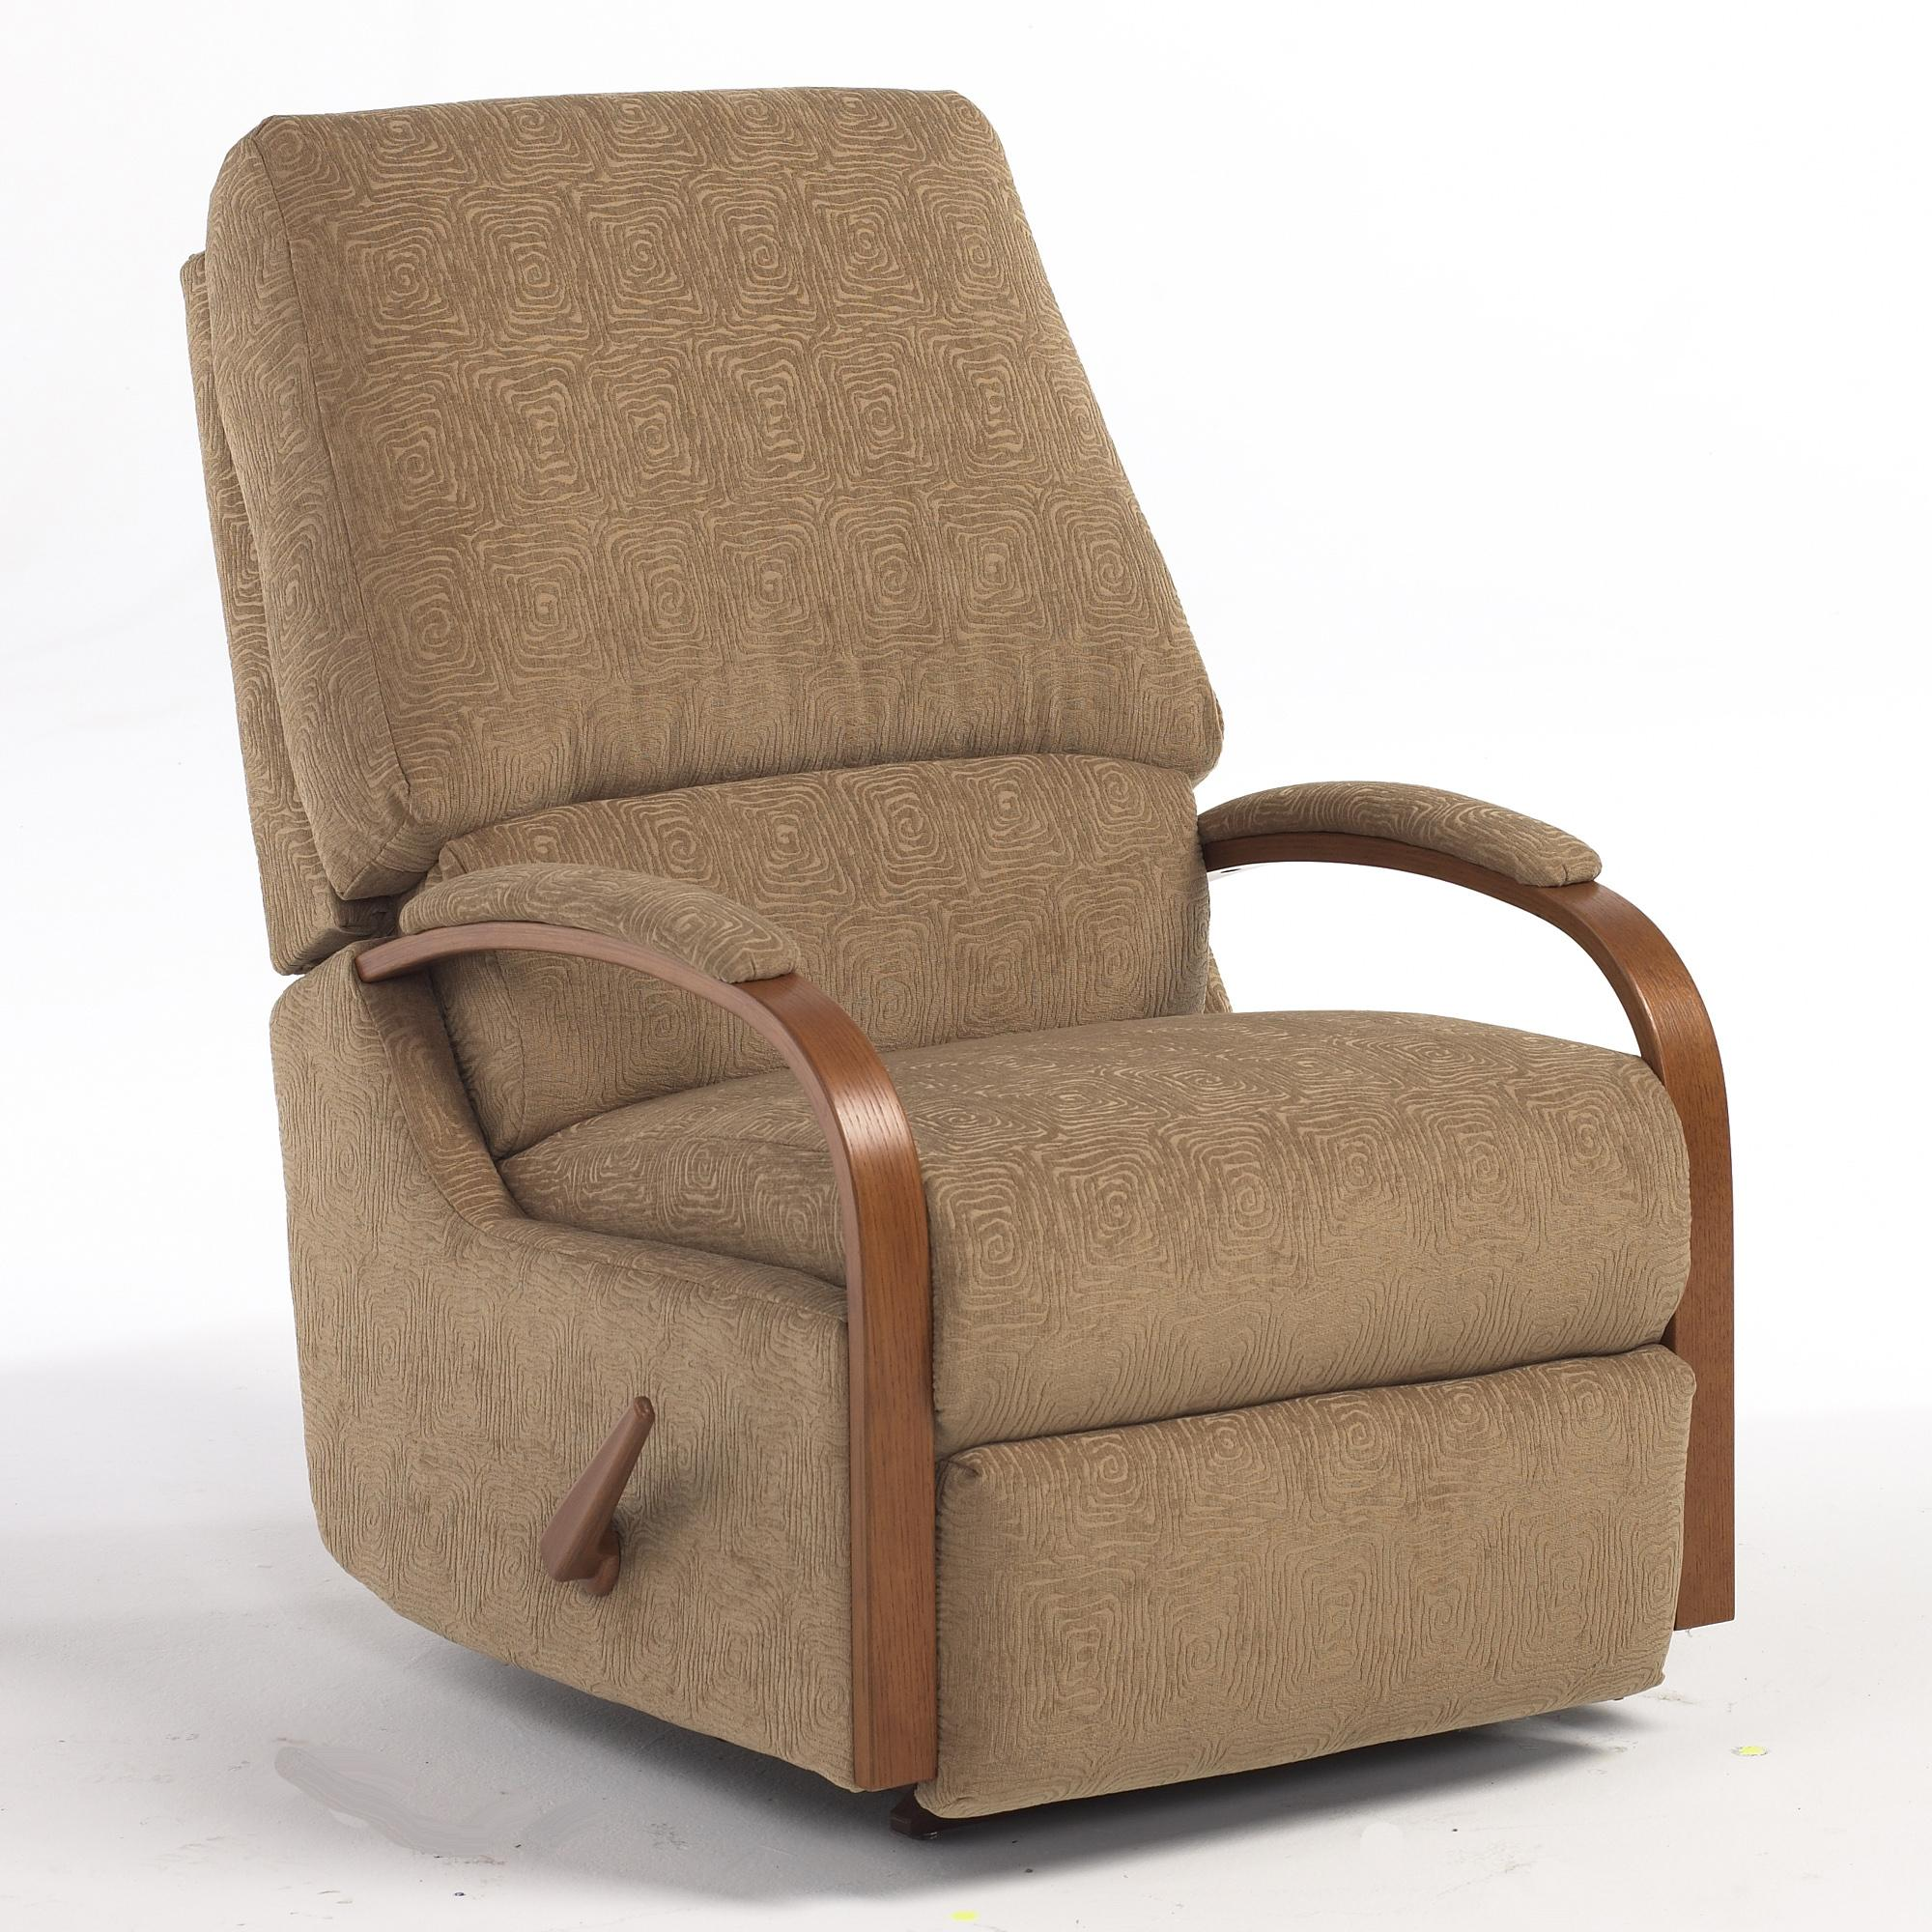 rocker and recliner chair baby blue spandex covers vendor 411 recliners medium pike swivel rocking